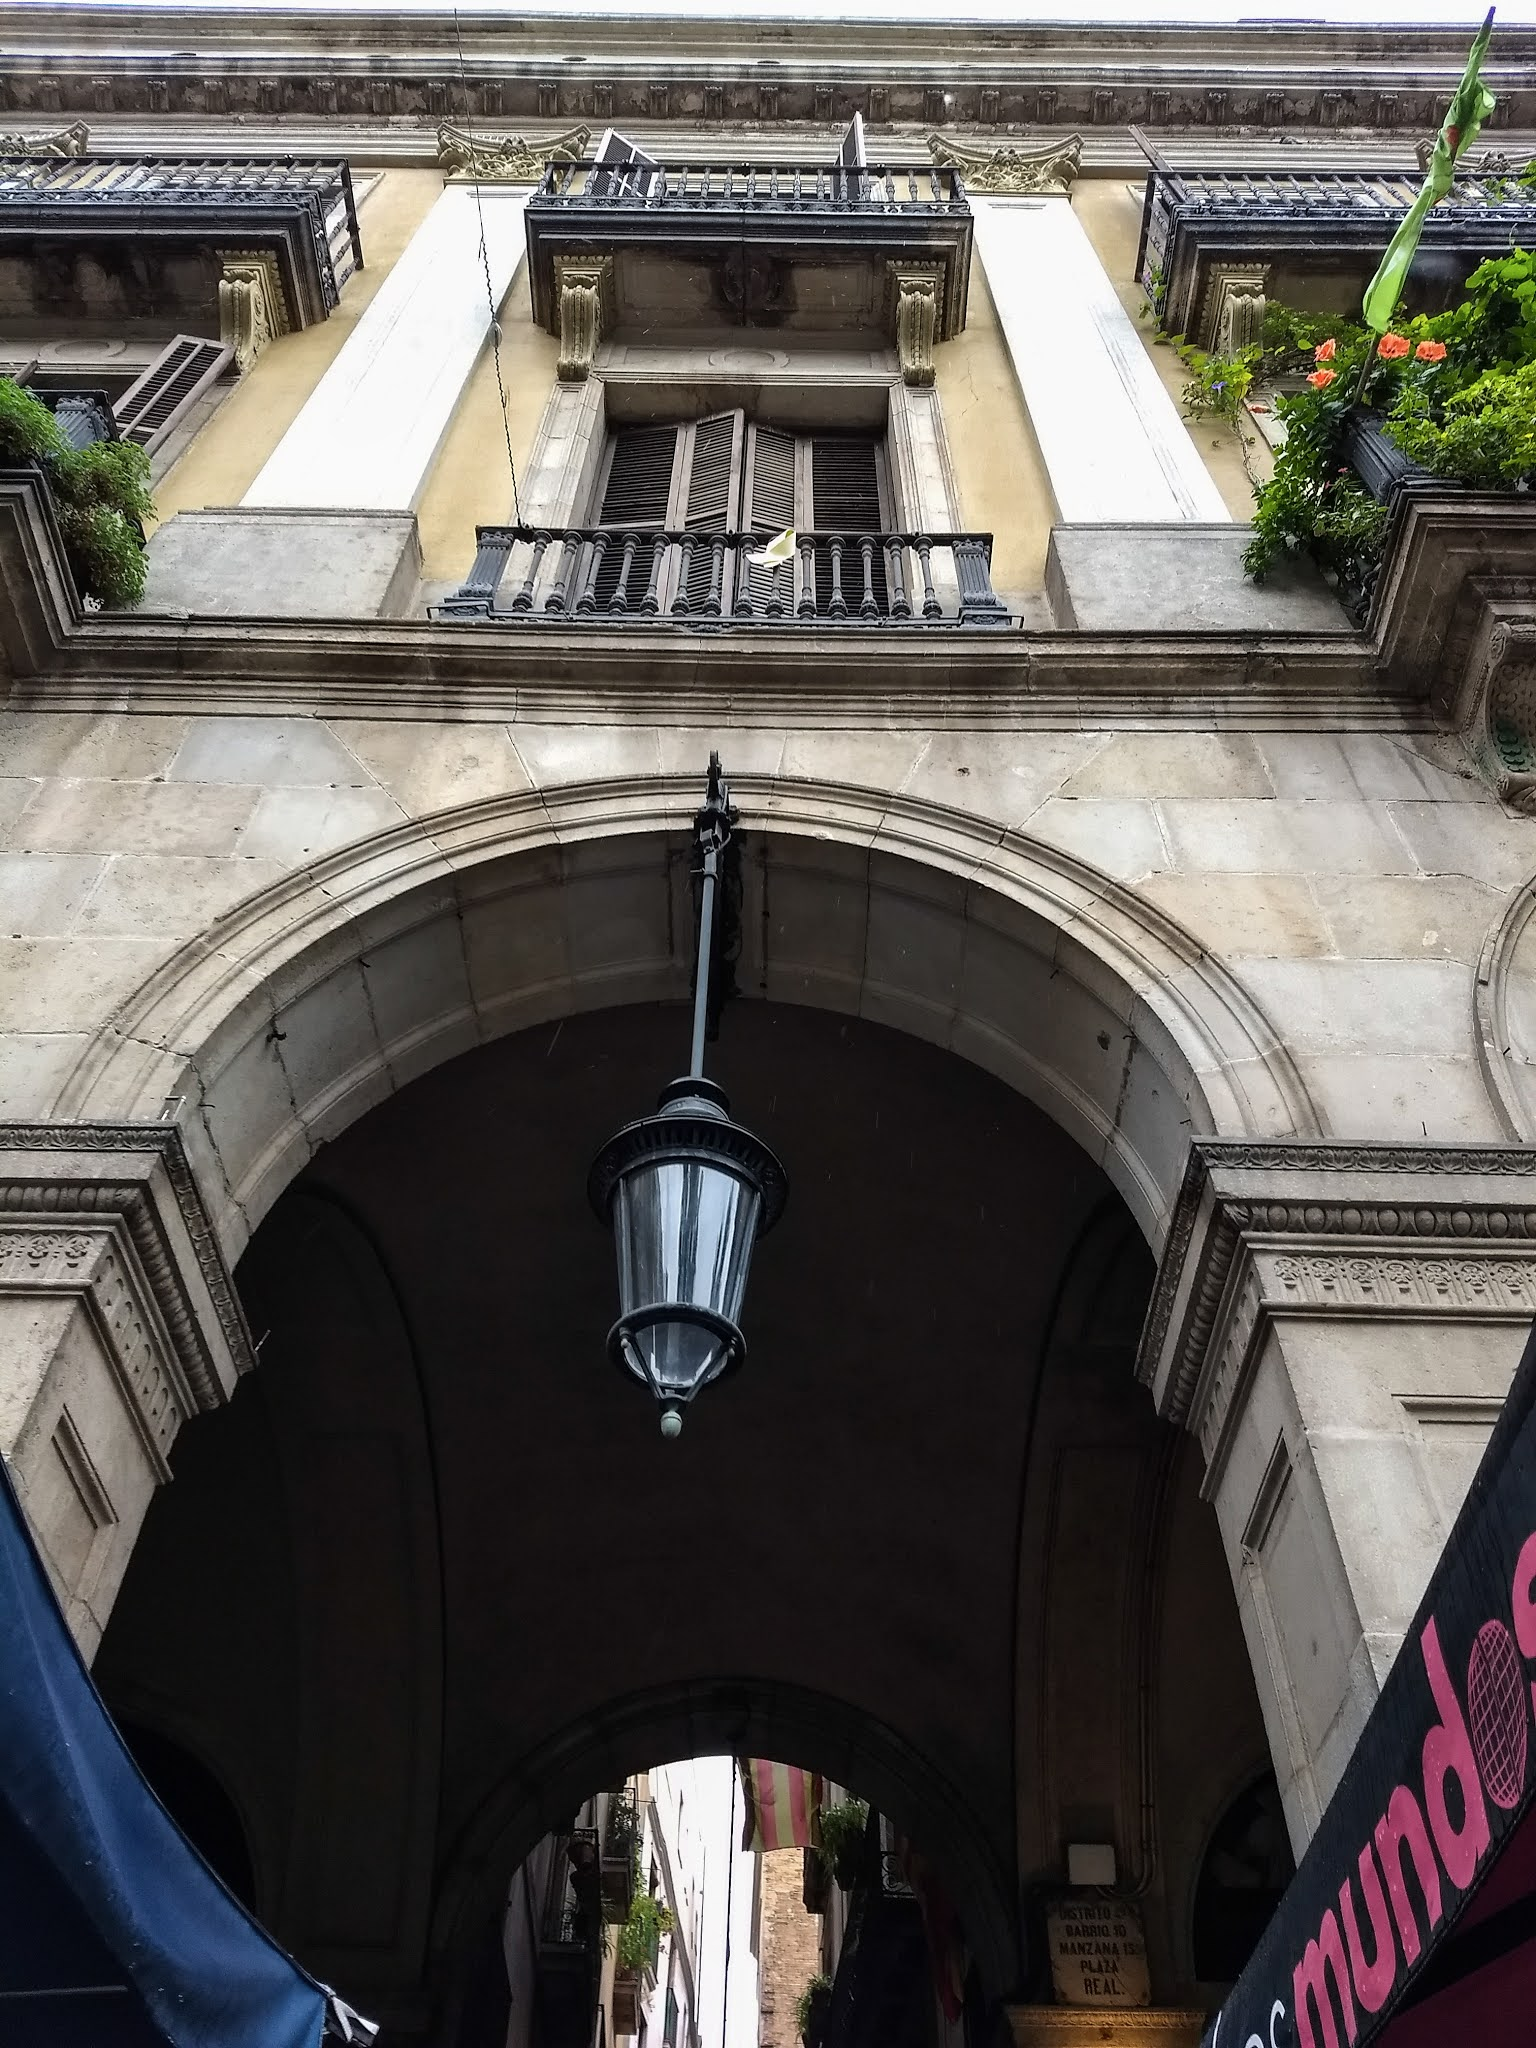 Looking up at an archway with a hanging light and balconies above on Plaza Reial in Barcelona.